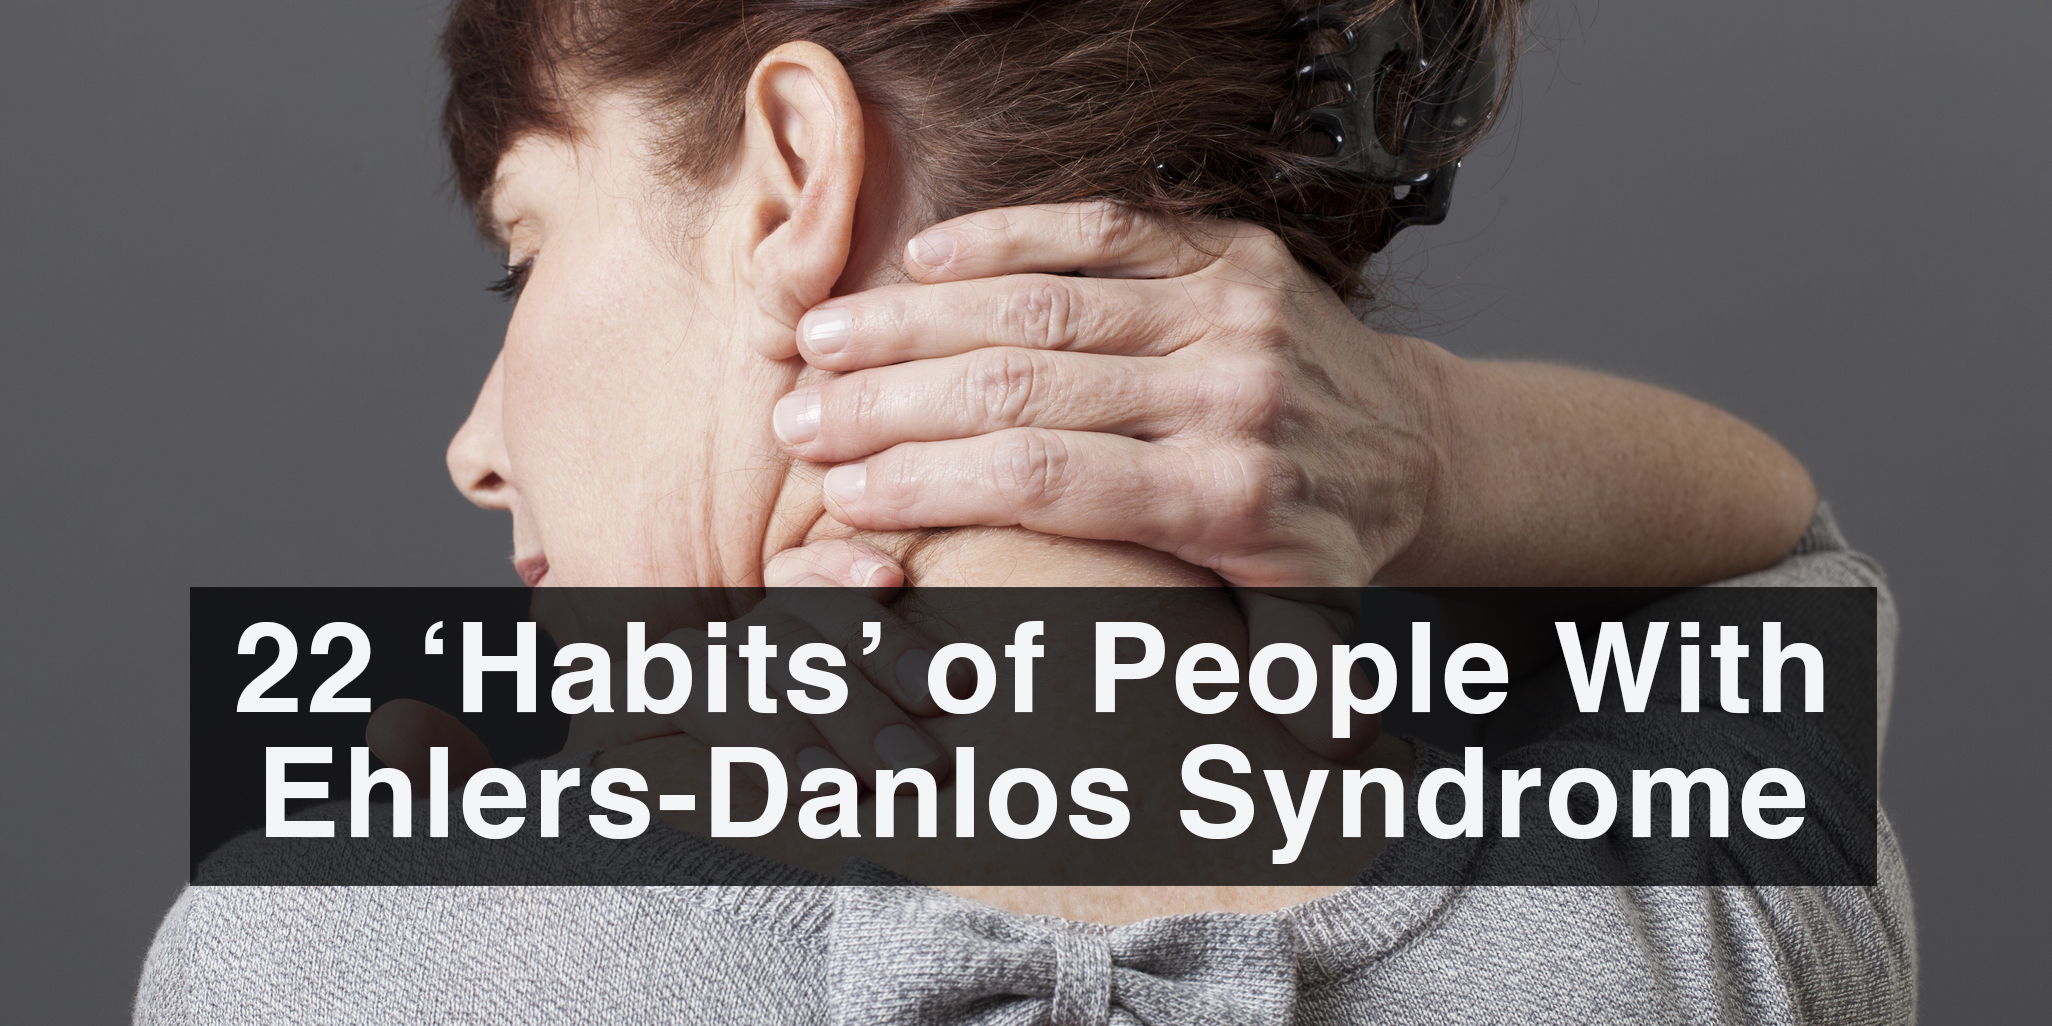 Ehlers Danlos Syndrome 22 Habits Of People With Ehlers Danlos Syndrome The Mighty